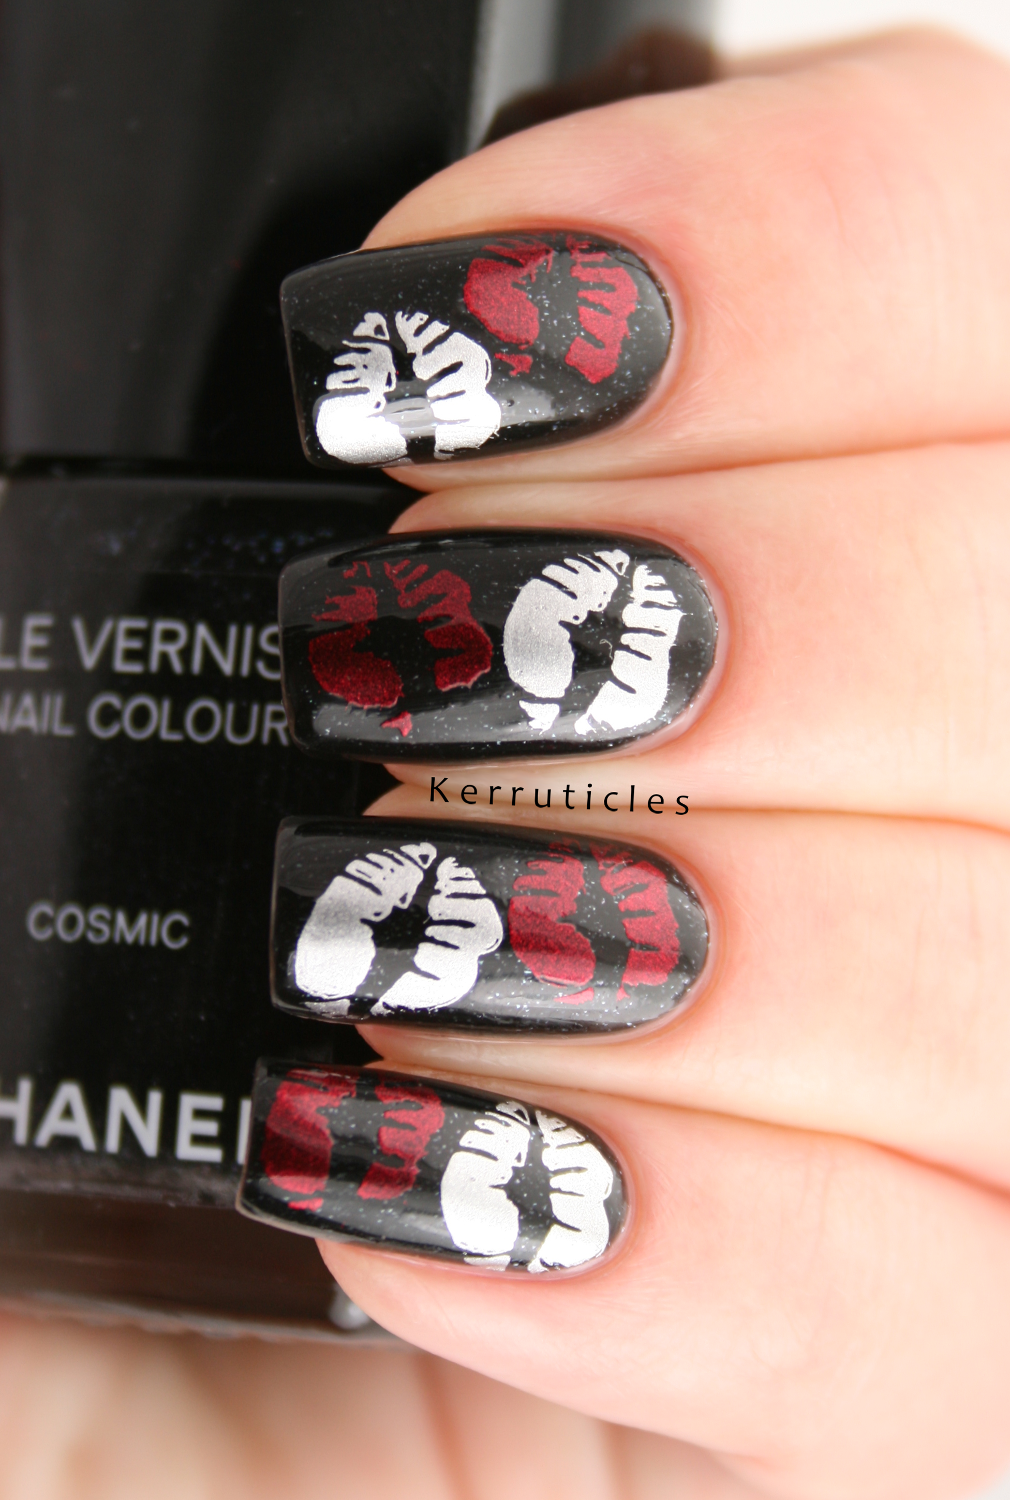 Week Of Love Valentine\'s Nail Art Challenge: Kisses | Kerruticles